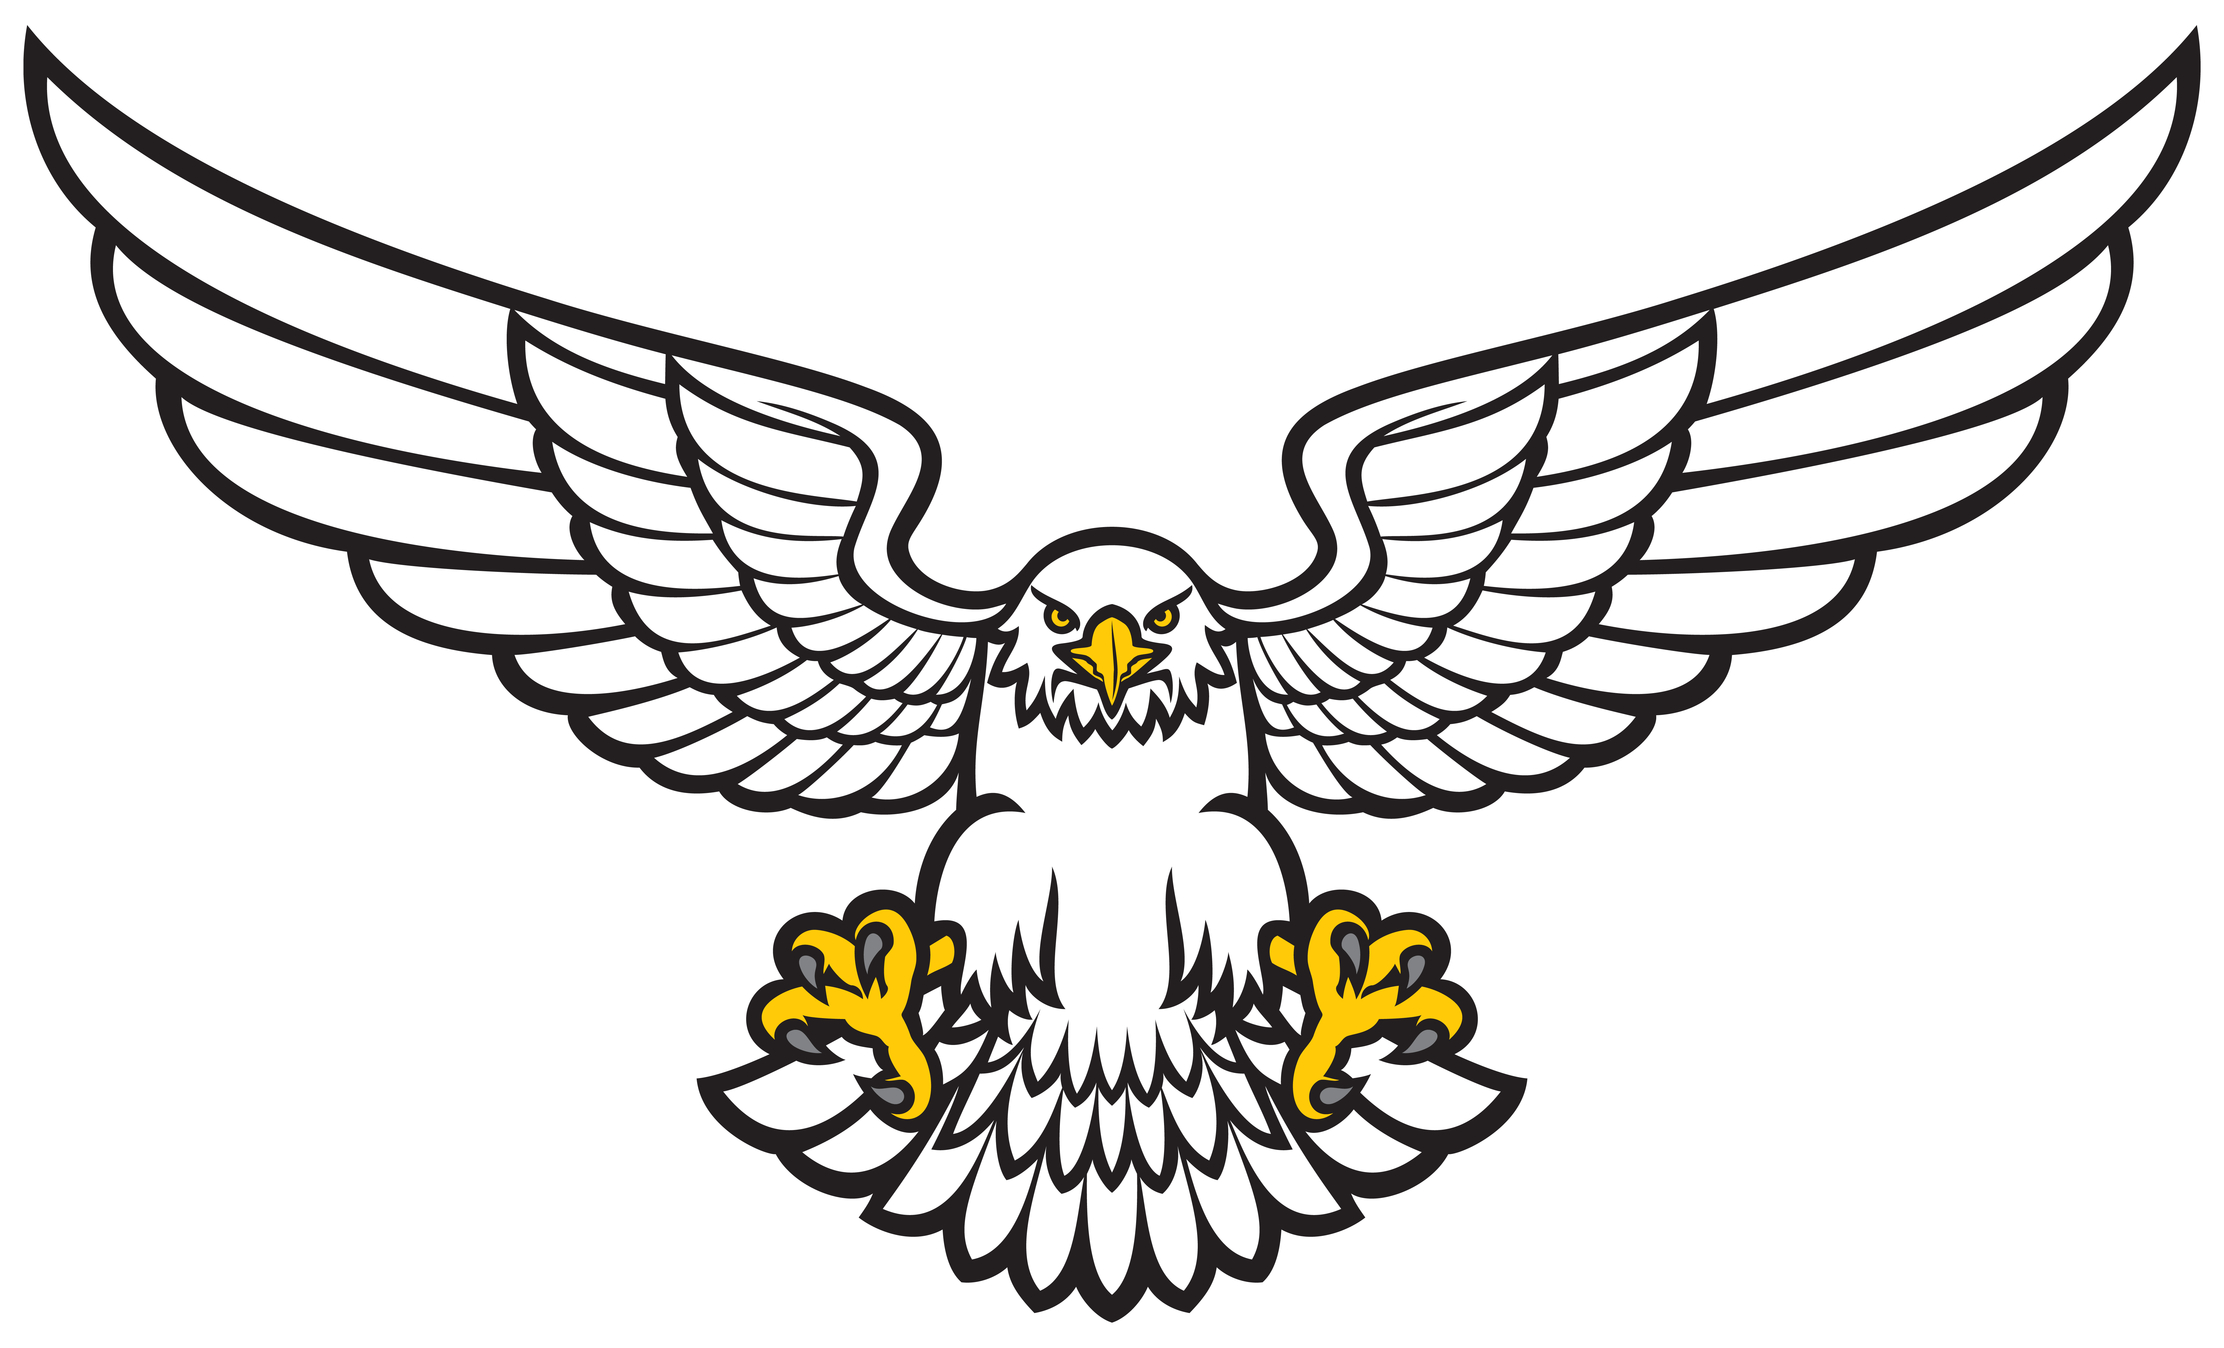 Line Drawing Eagle : Line drawings for eagle clipart best